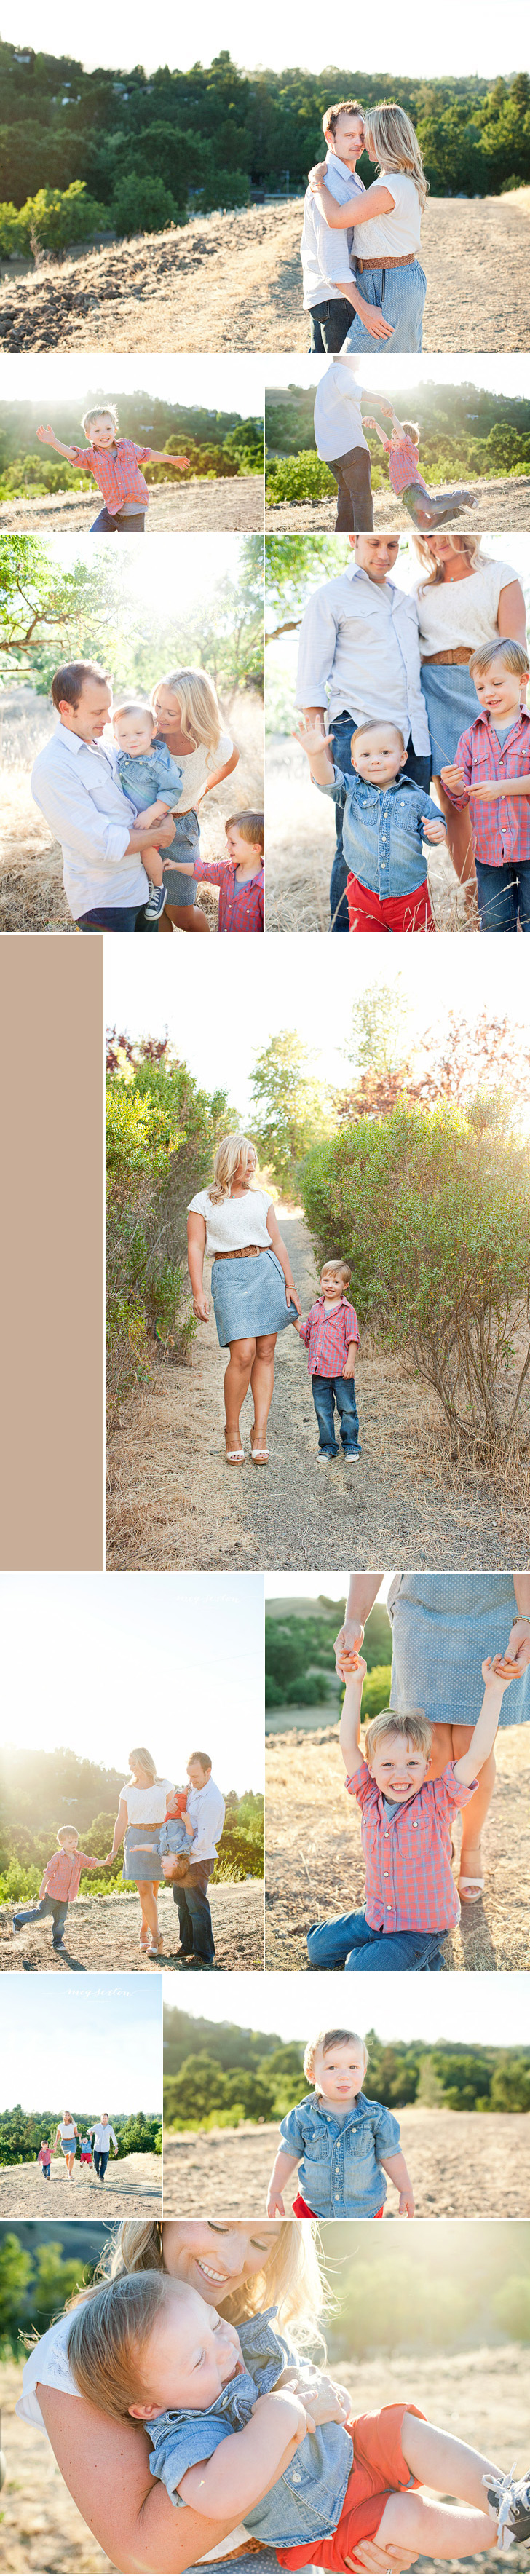 lifestyle and family photographer in san francisco